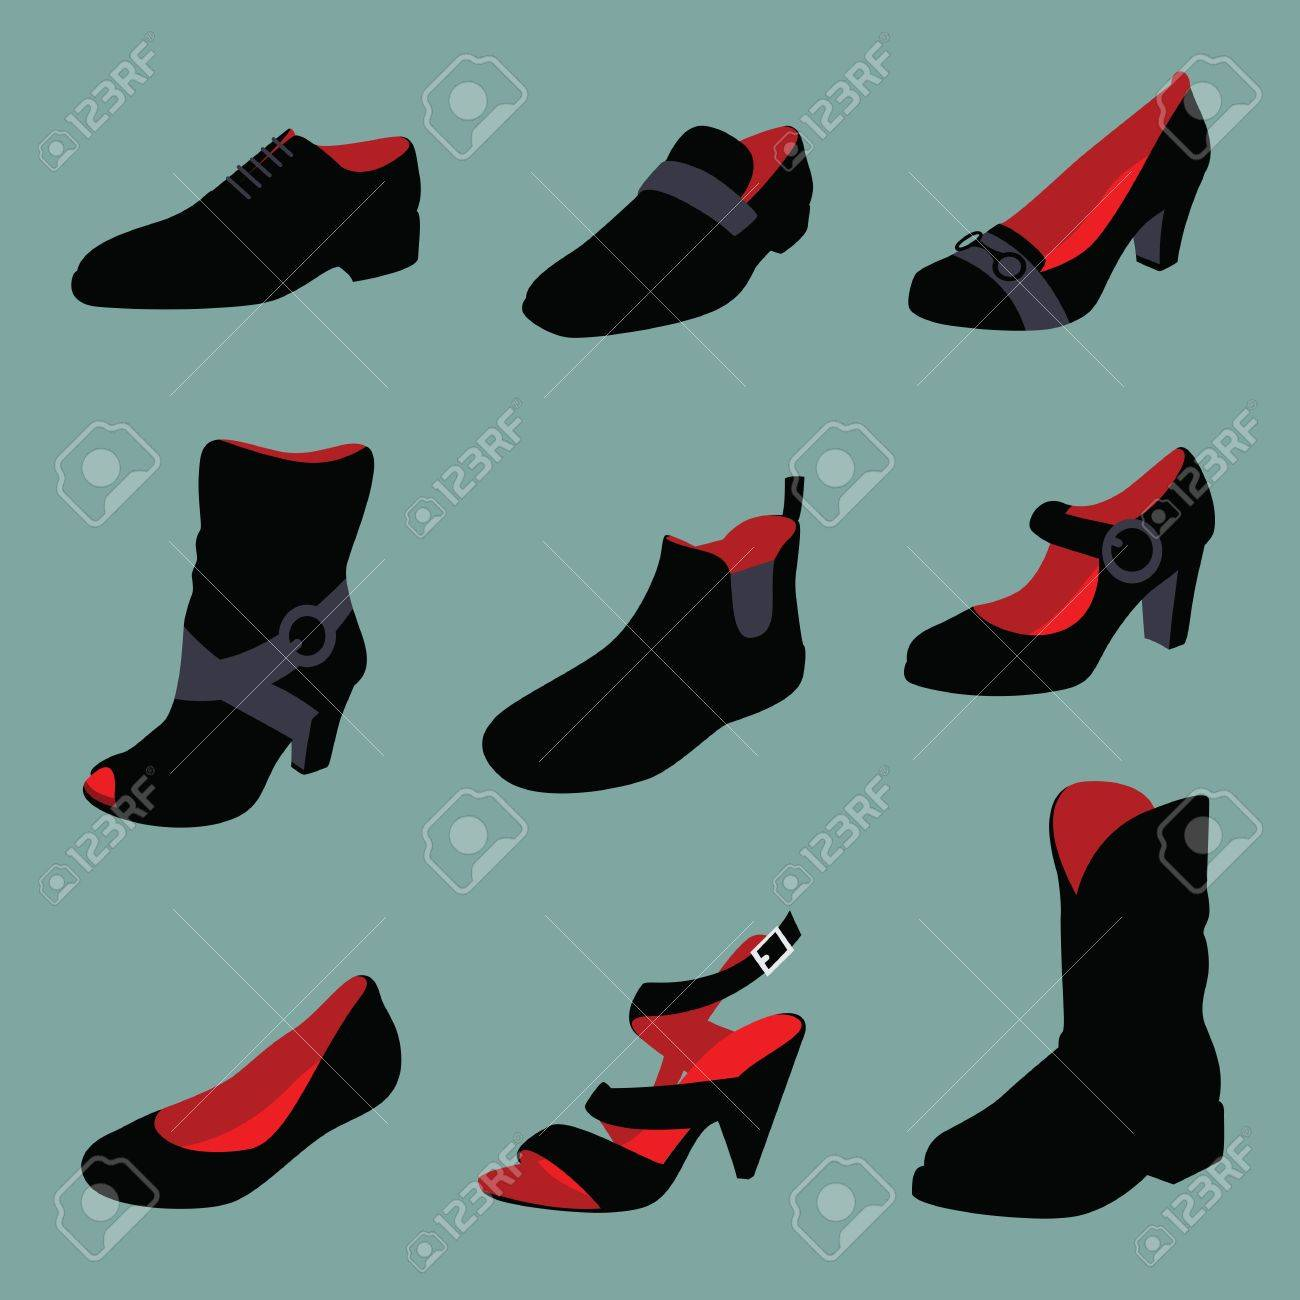 Men and women shoes silhouettes isolated on green background. Stock Photo - 13211900